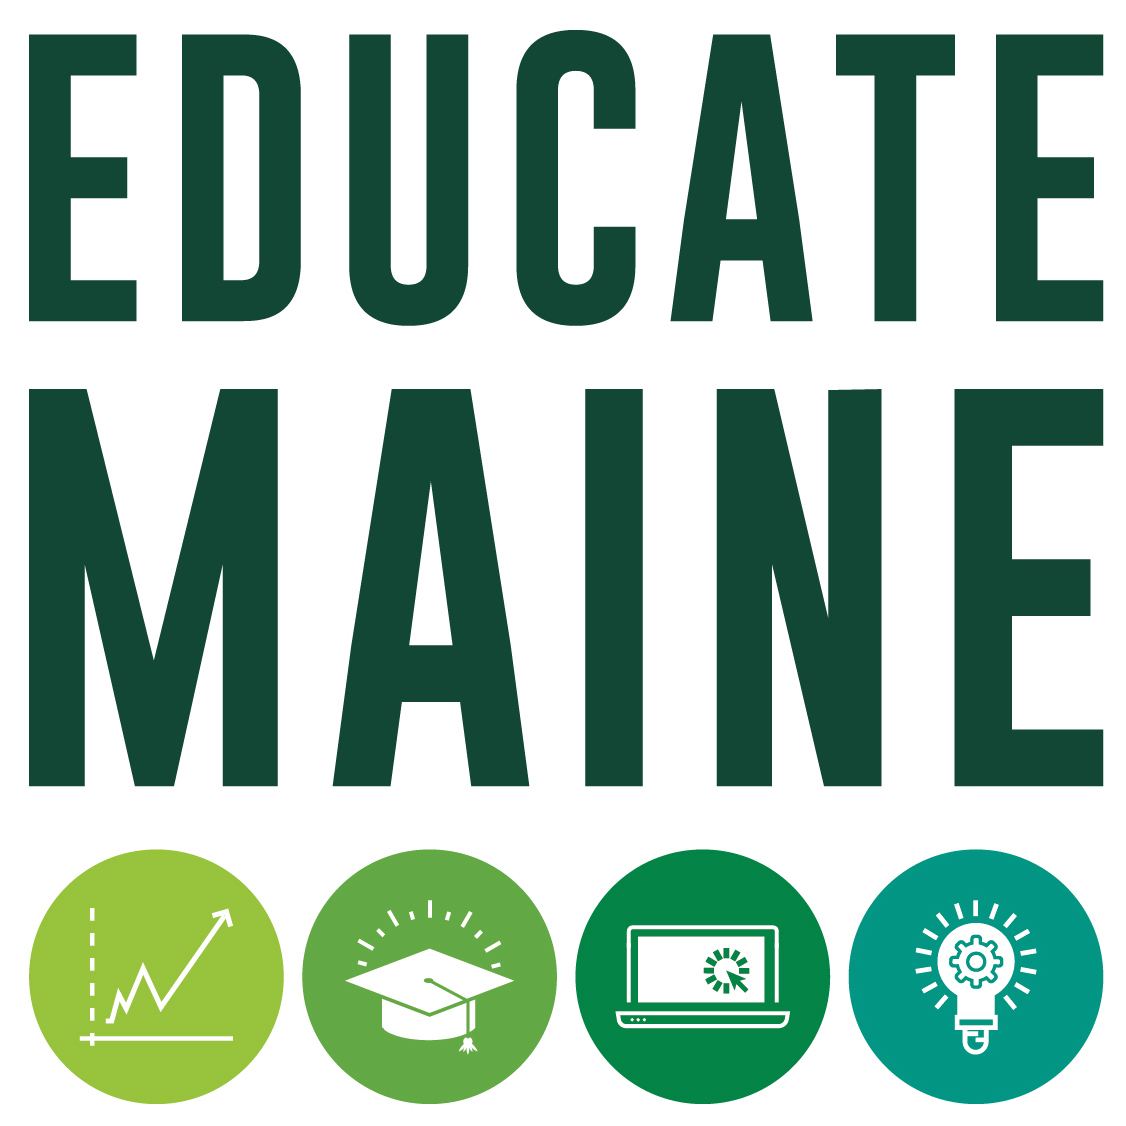 Business group holding education summit in Portland, Maine